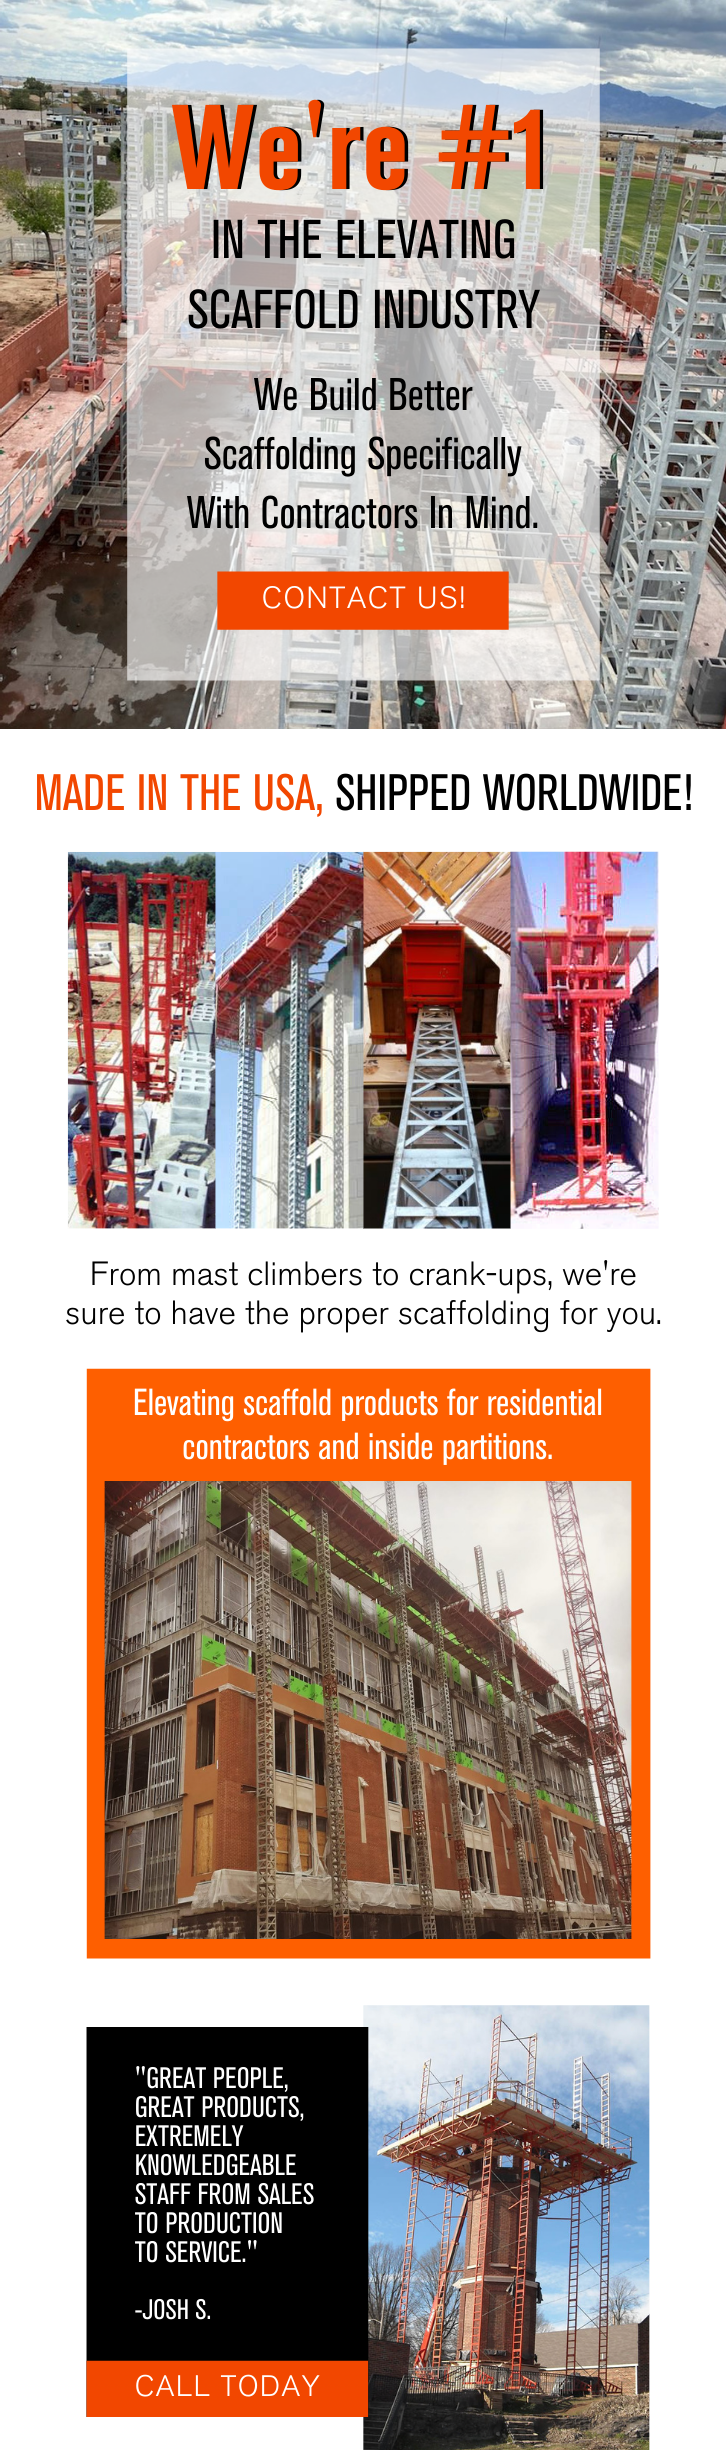 We're #1 In The Elevating Scaffold Industry 3